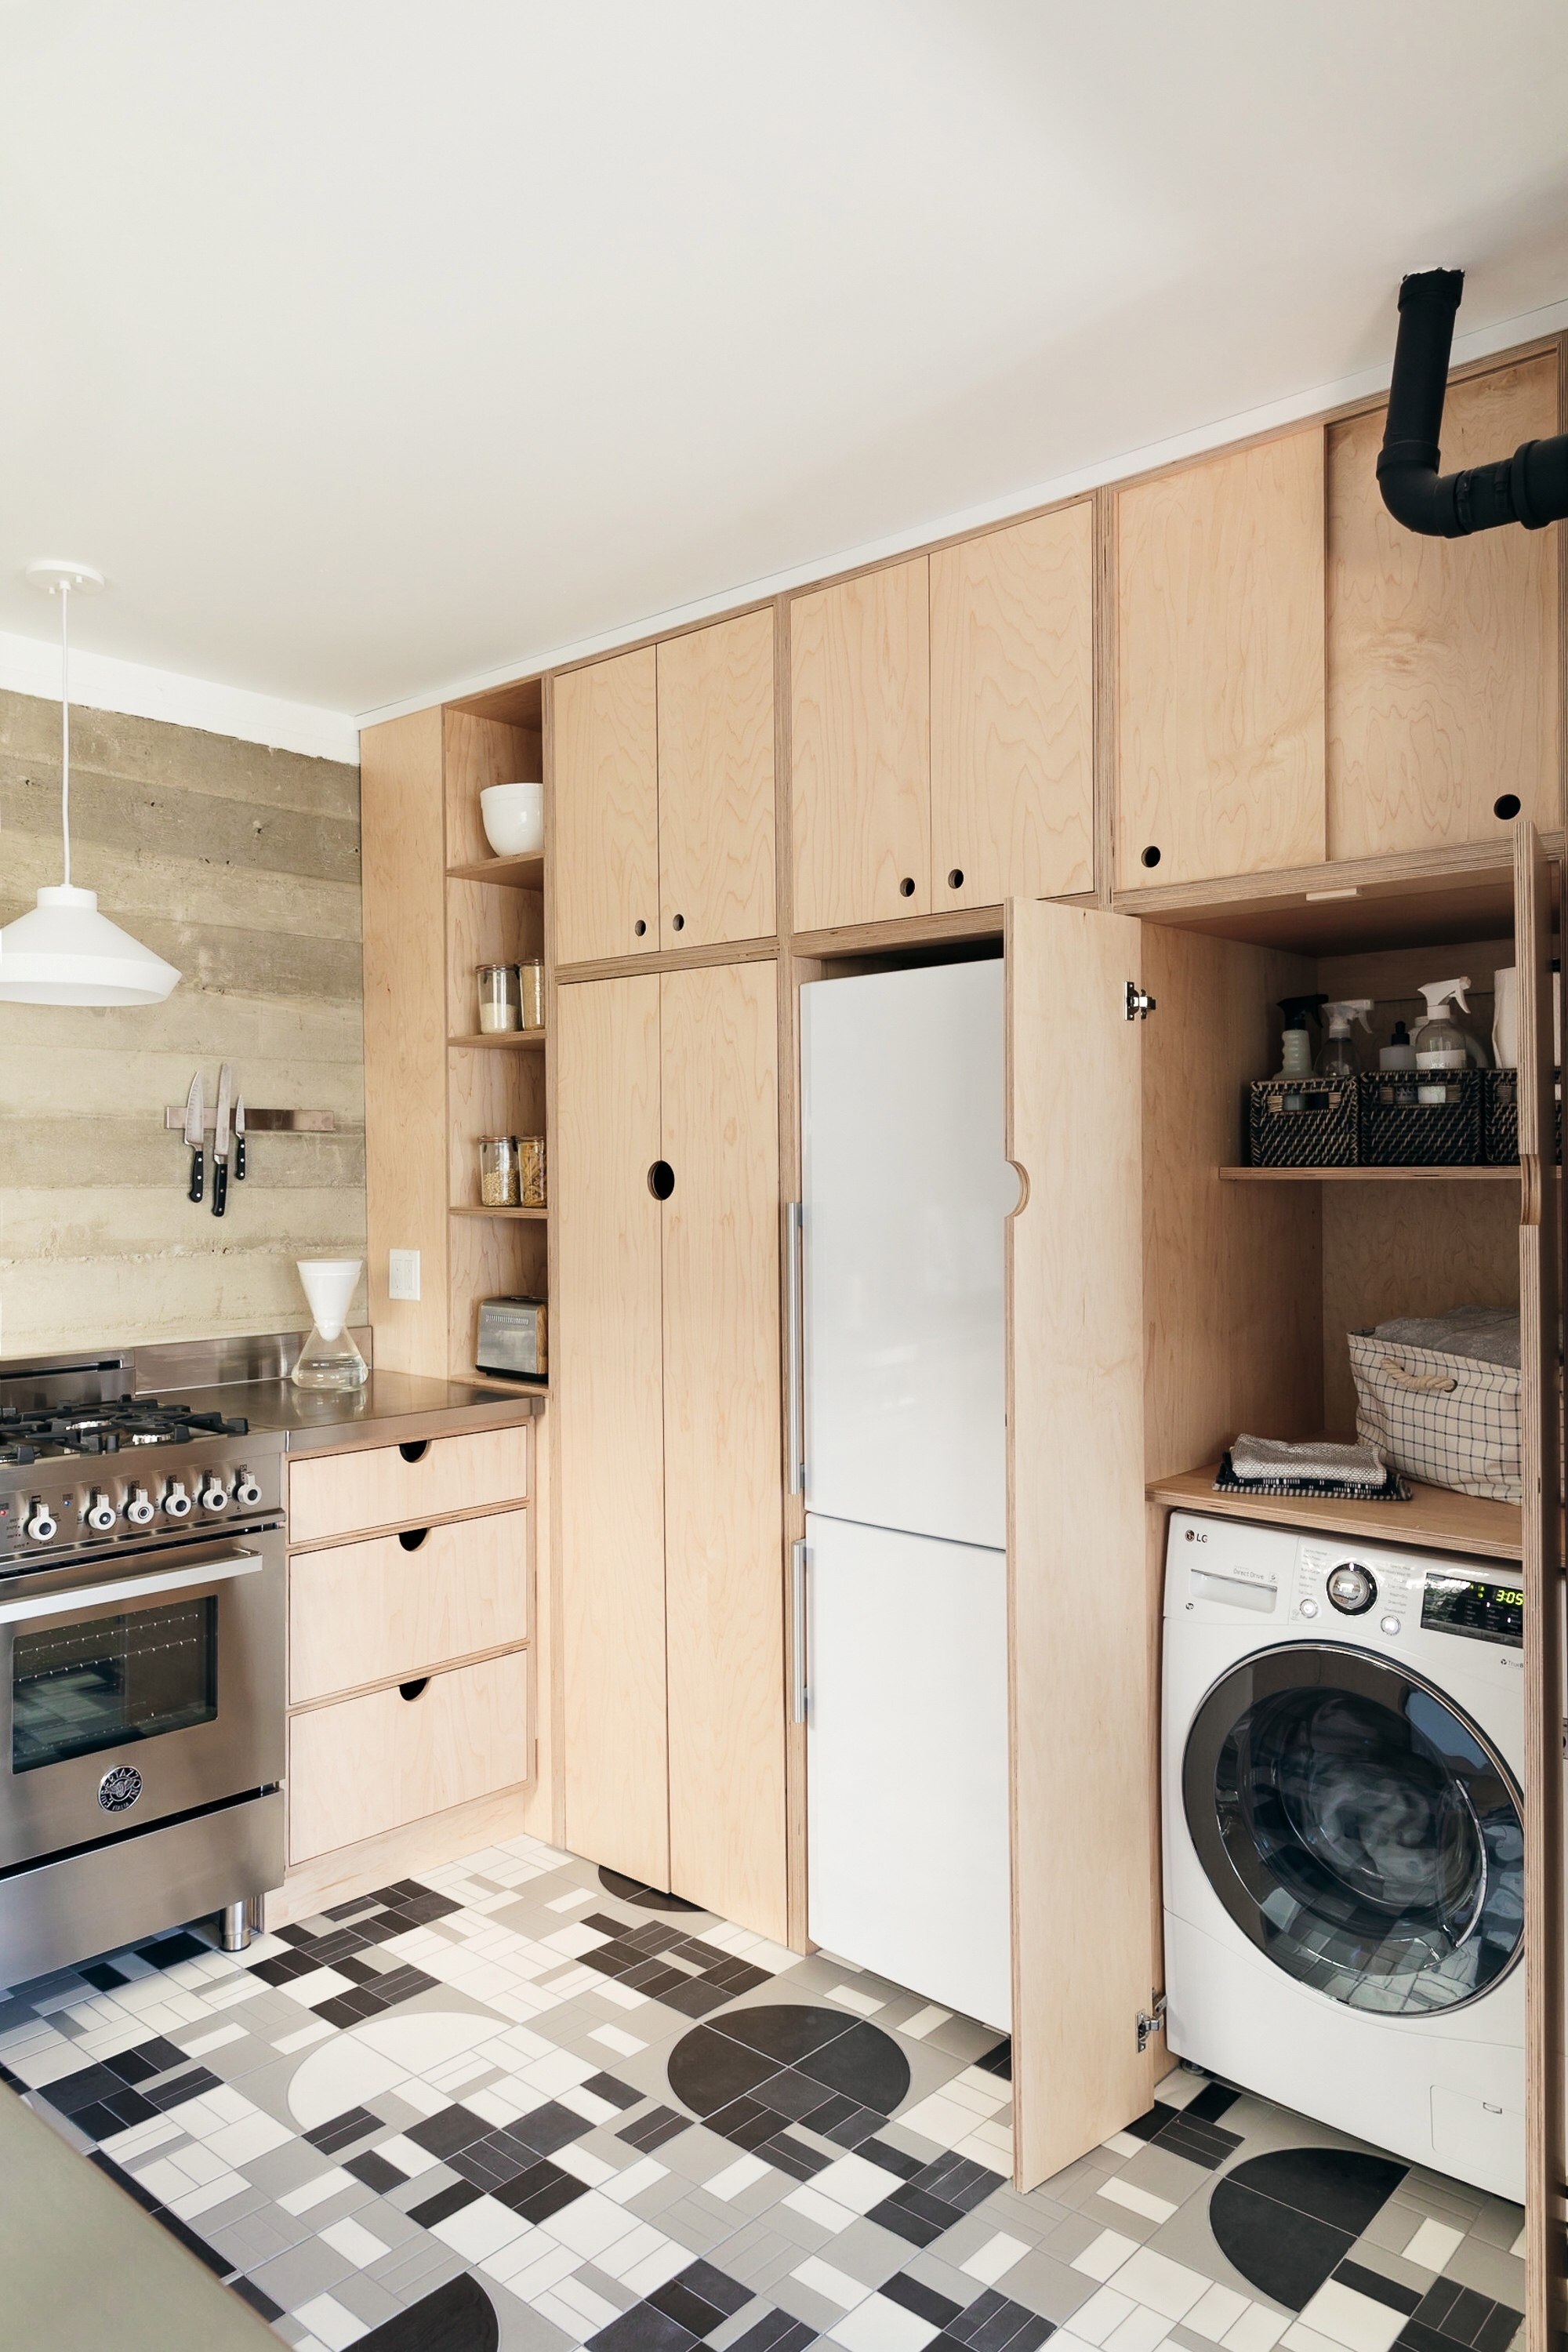 2018_Q4_image_hi_res_monica_wang_rights_influencer_anne_sage_designer_jess_taylor_kitchen_floor_handpainted_agrarian_grange_fallow_with_laundry_FC-235169.jpg?mtime=20181108114413#asset:424895